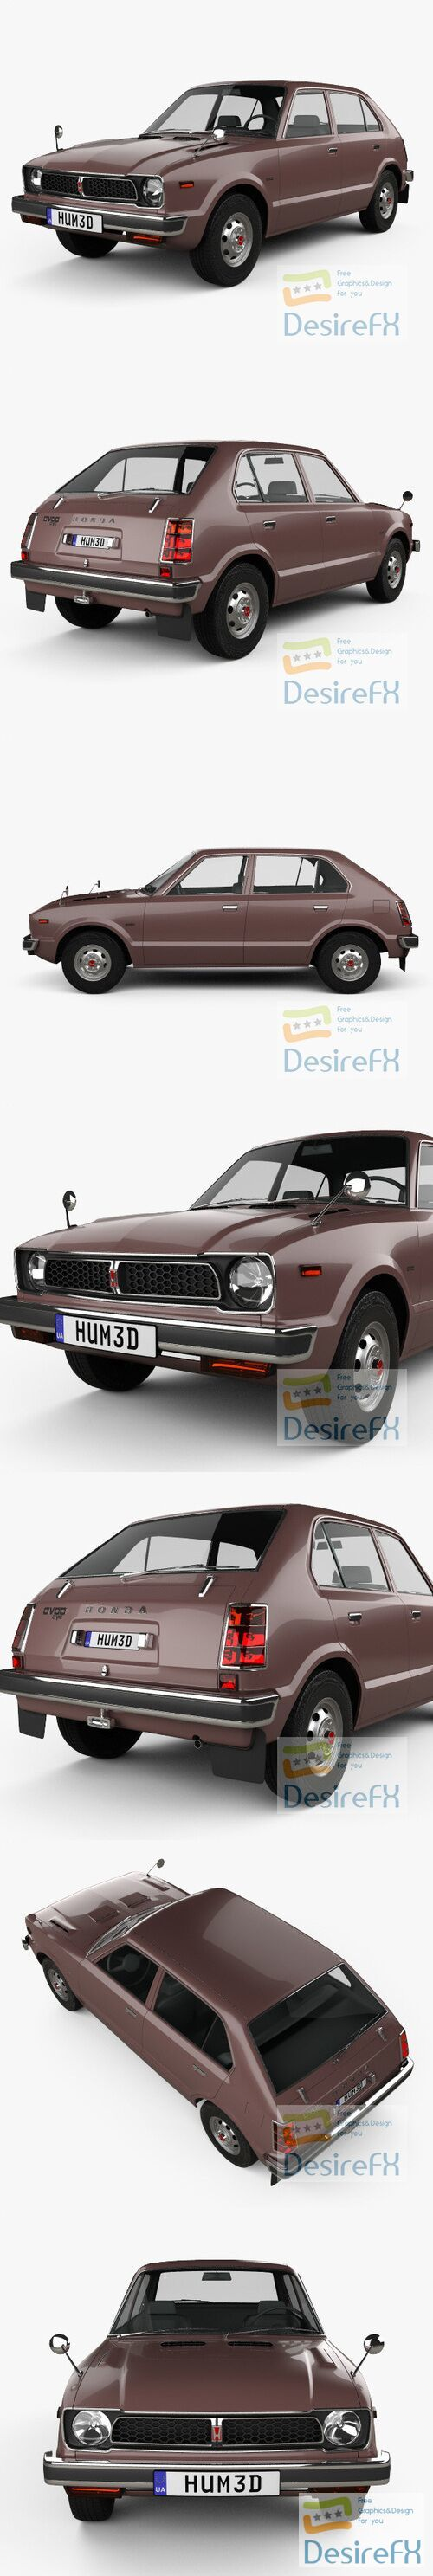 Honda Civic 4-door 1976 3D Model